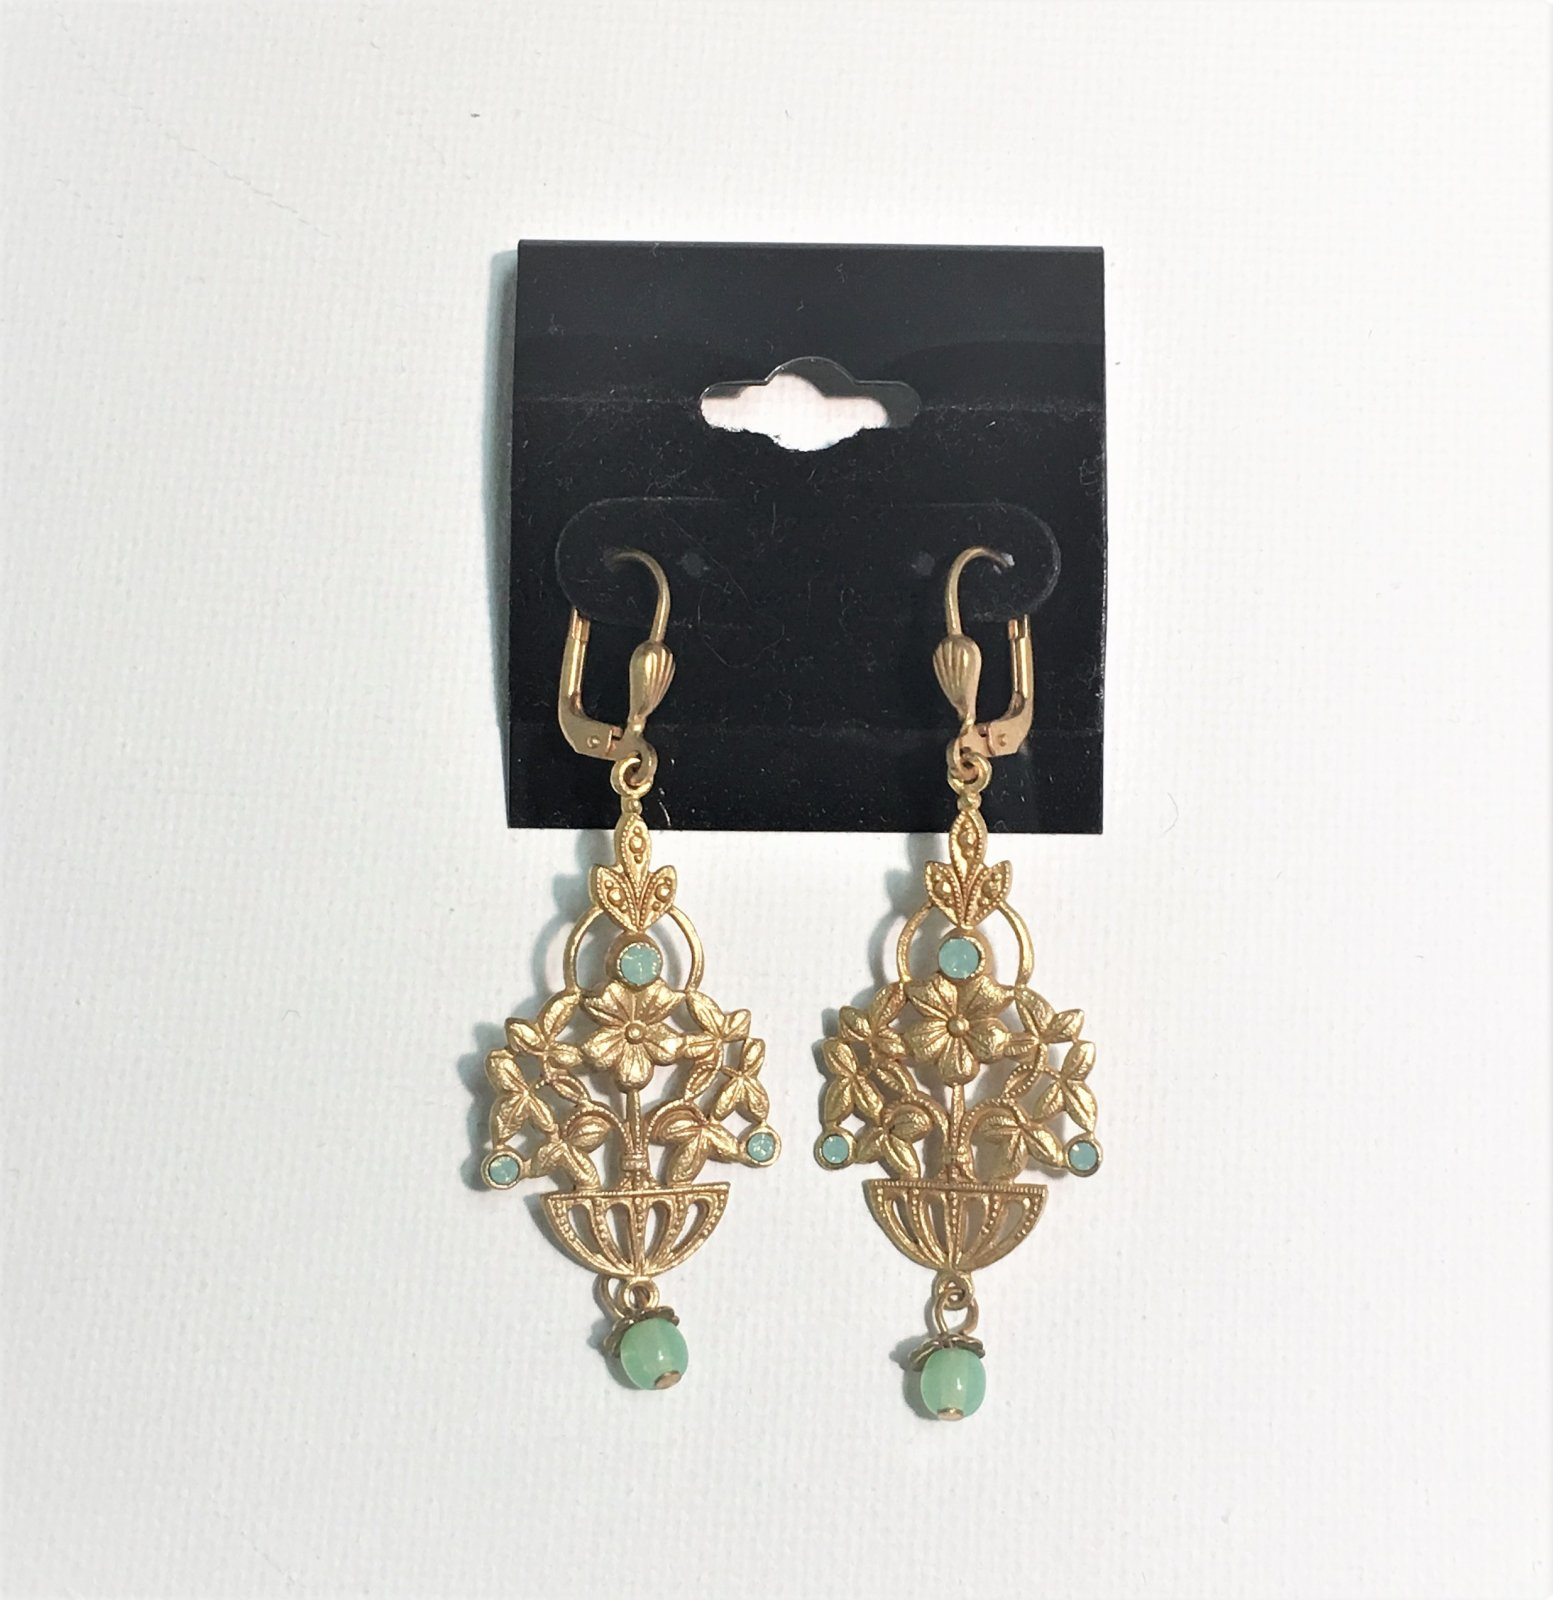 Floral Gold Earrings with Blue Accent